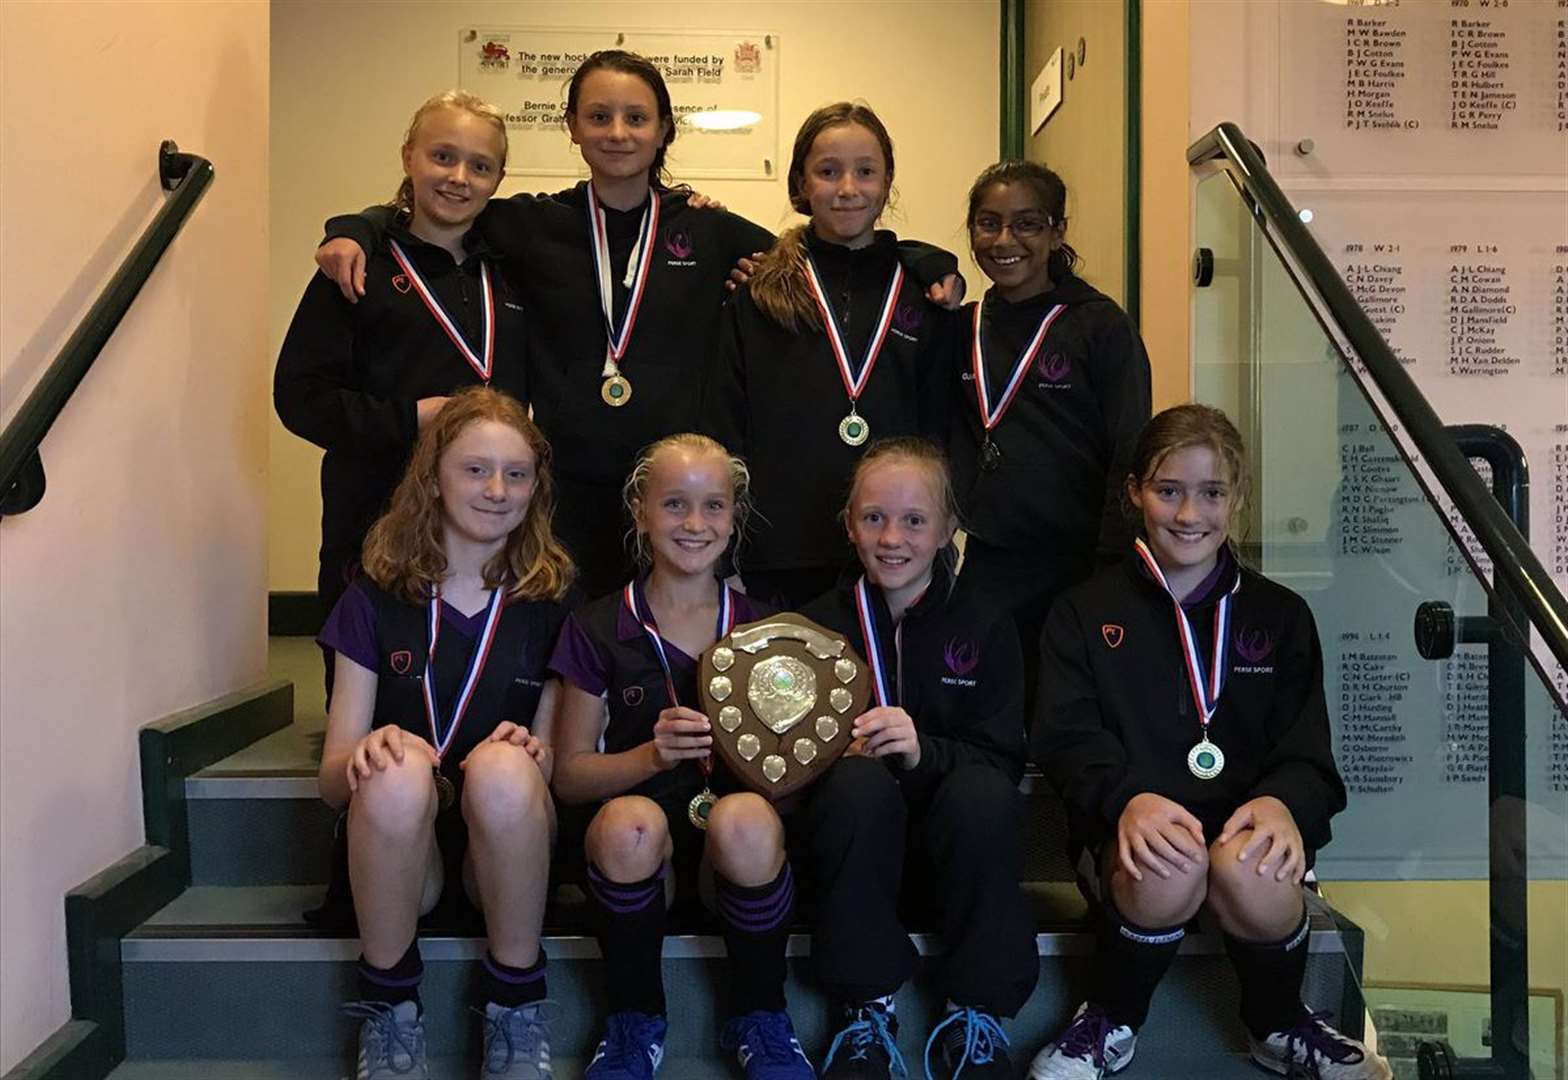 The Perse School under-12s hockey team crowned Cambridgeshire champions